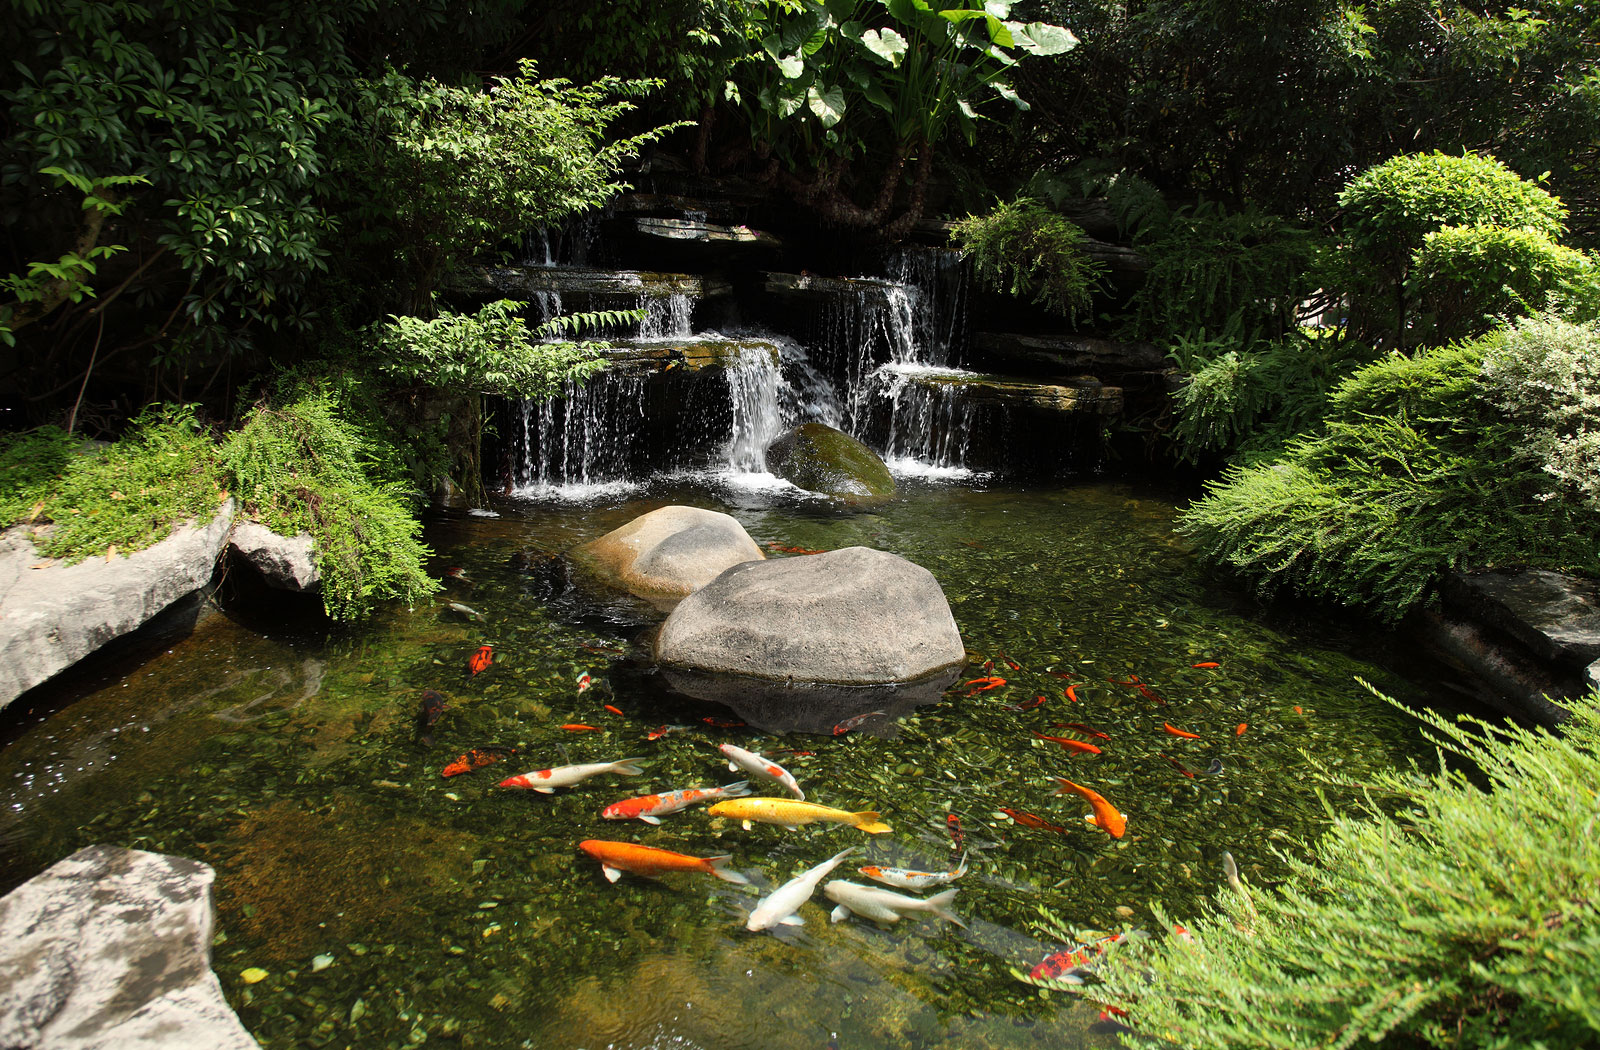 Ponds Backyard Photos :  garden and koi pond koi pond with waterfall tropical zen garden pond